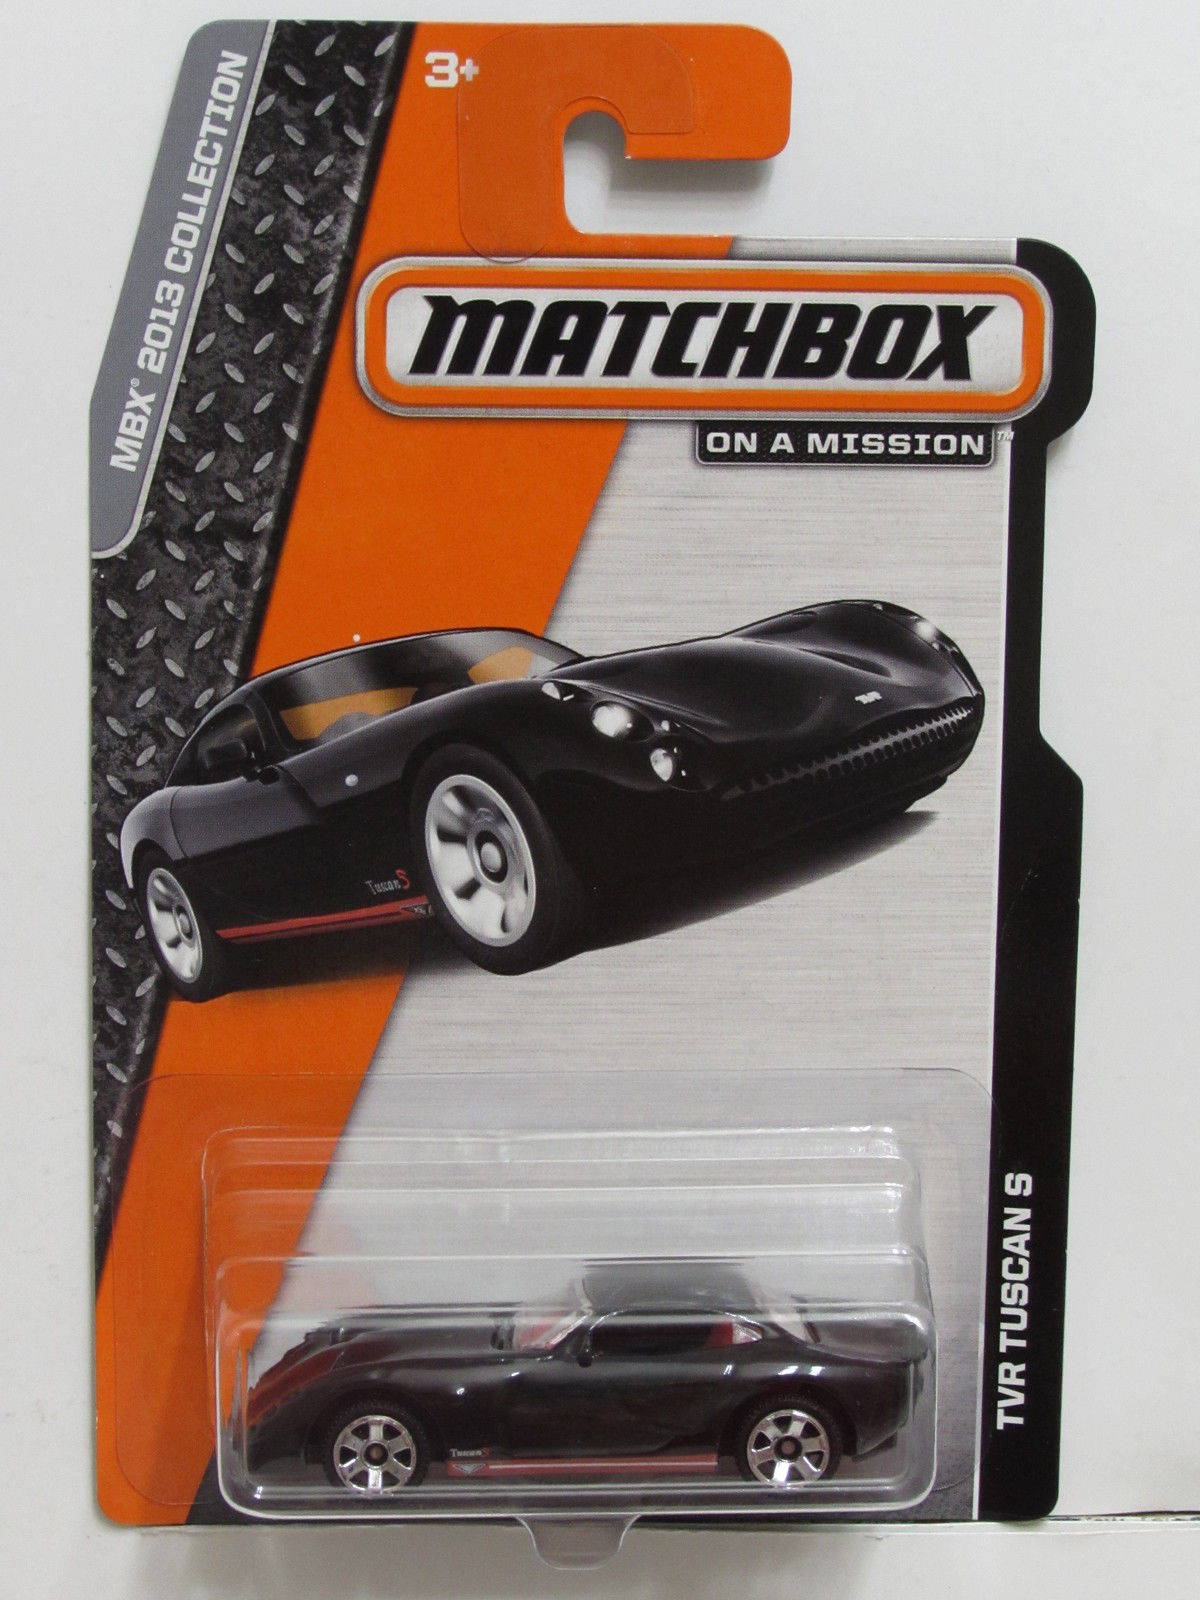 MATCHBOX 2013 ON A MISSION MBX COLLECTION TVR TUSCAN S